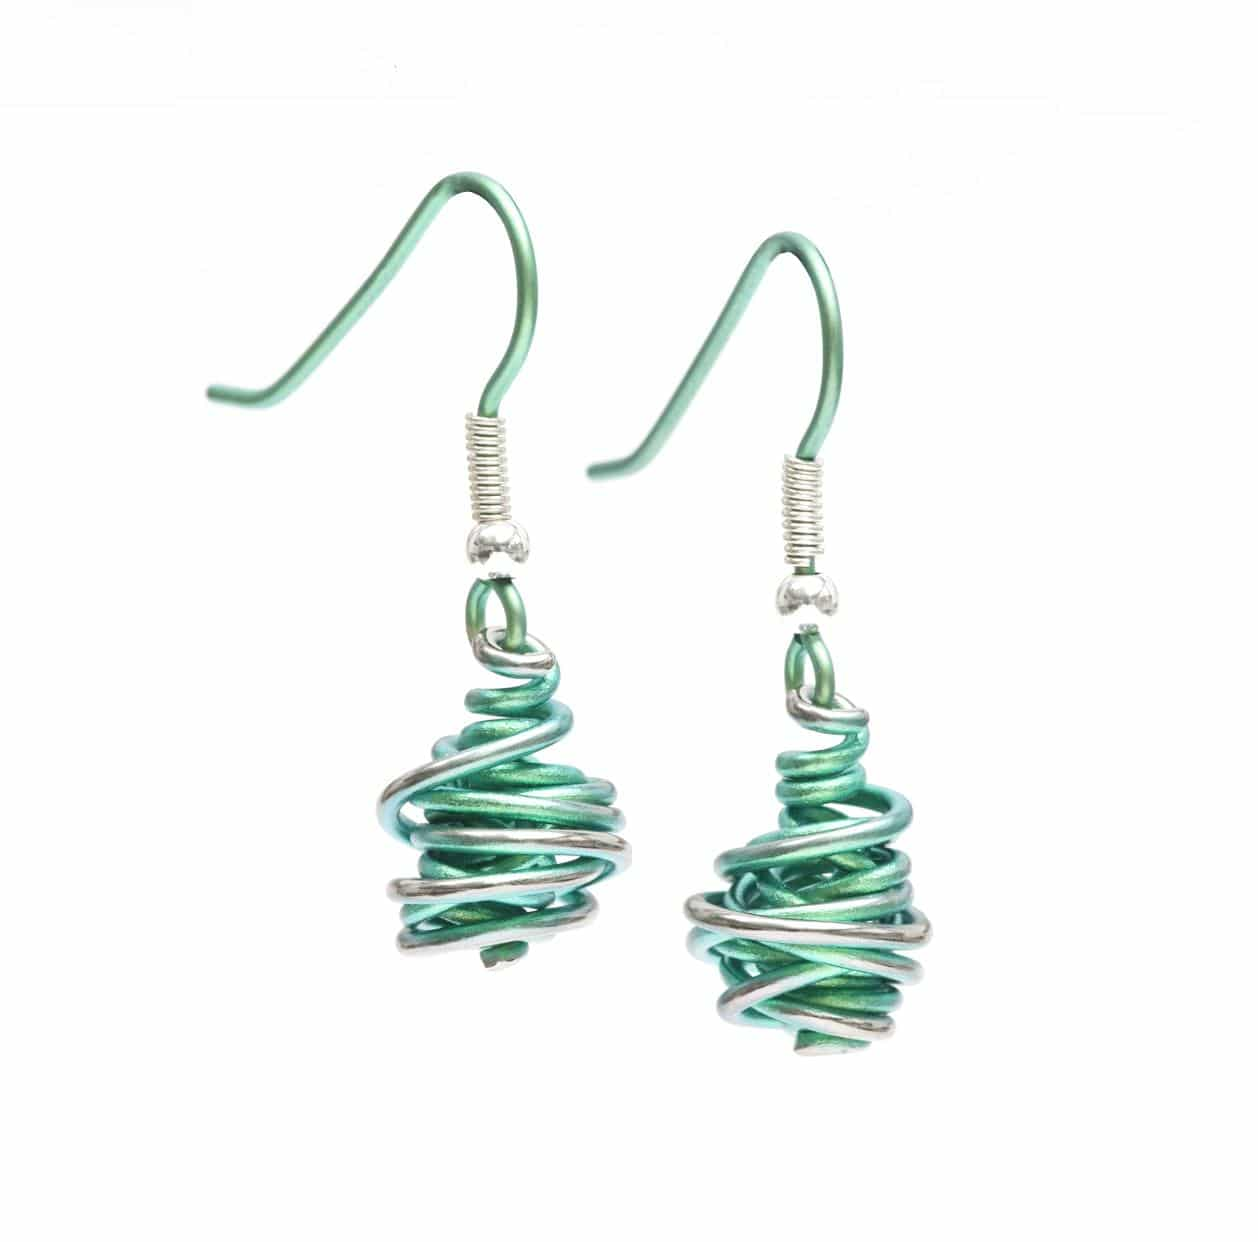 Ti2 Titanium Chaos Drop Earrings Green - More Colours Available